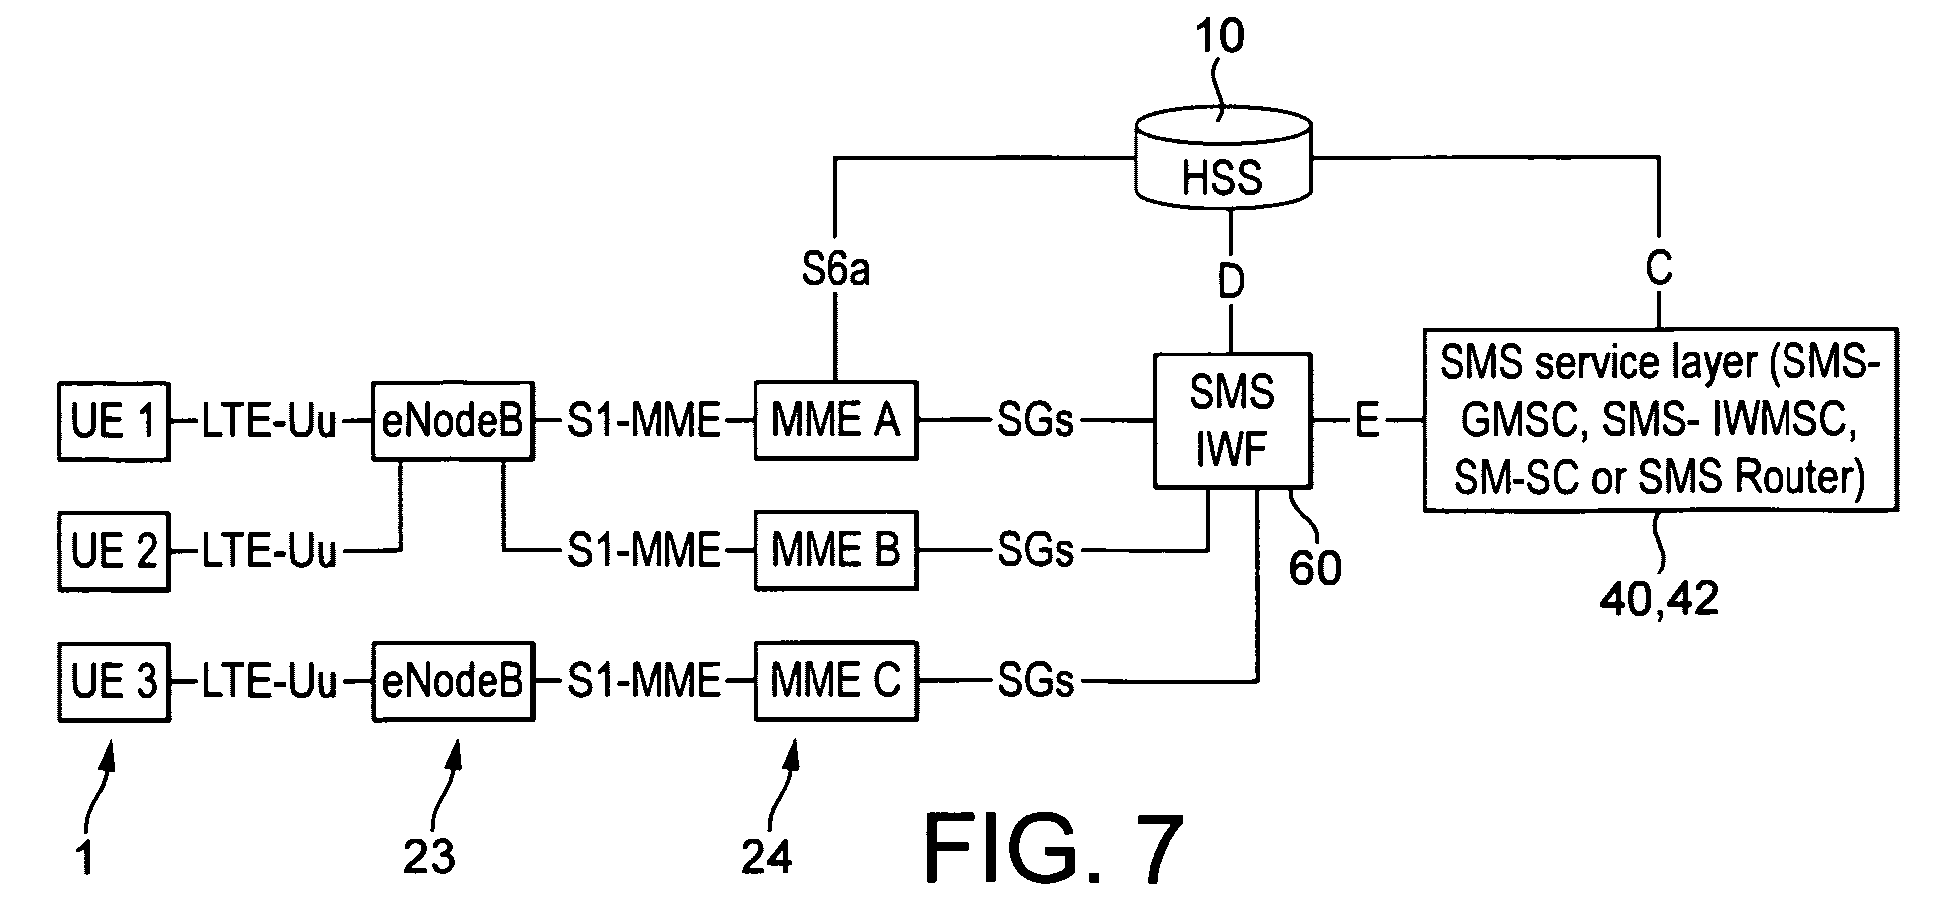 Messaging in mobile telecommunications networks - Patent 2282561